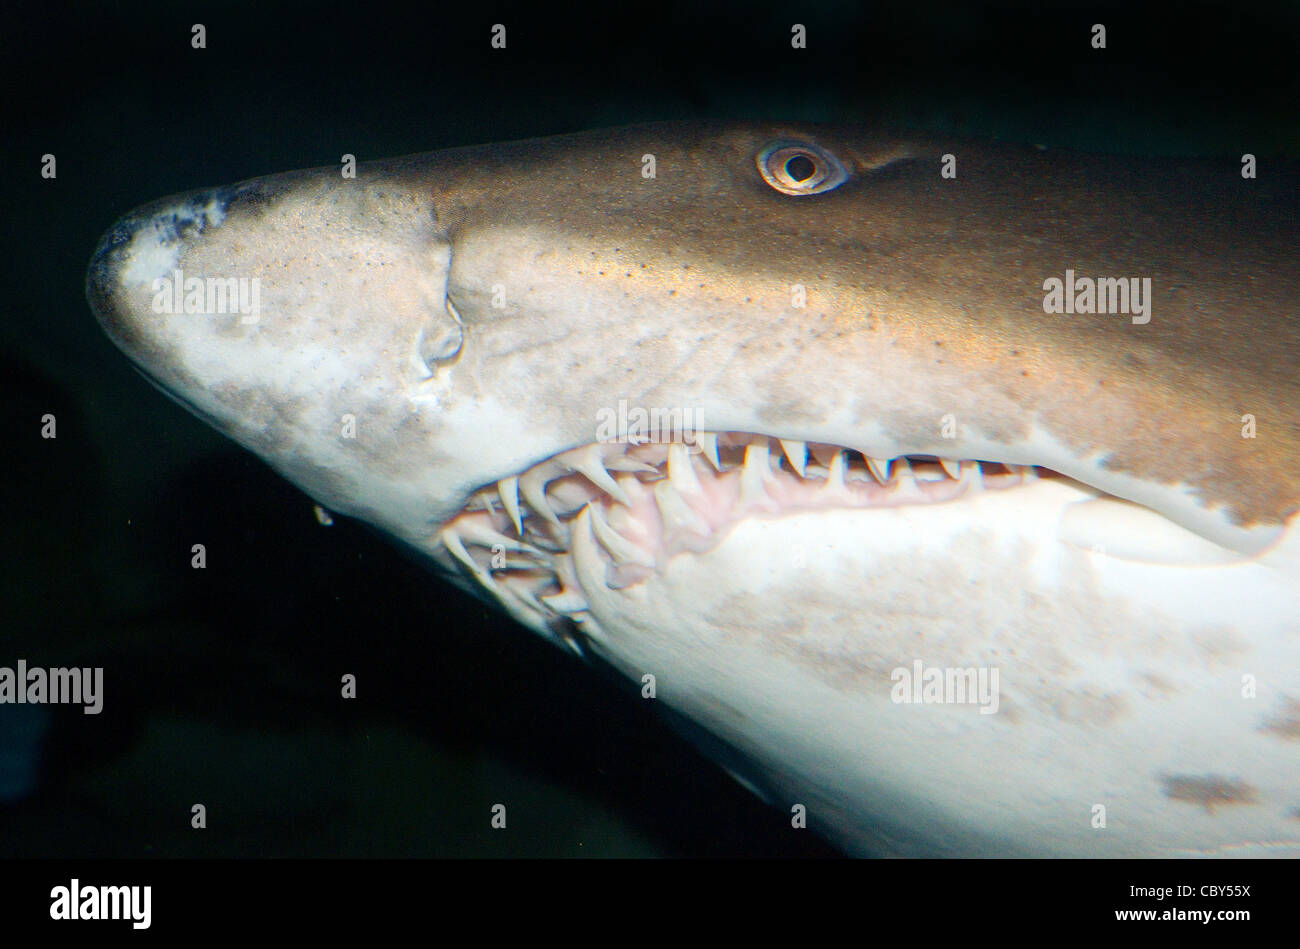 Sand tiger shark information amp pictures of sand tiger sharks - Portrait Sand Tiger Shark Grey Nurse Shark Spotted Ragged Tooth Shark Or